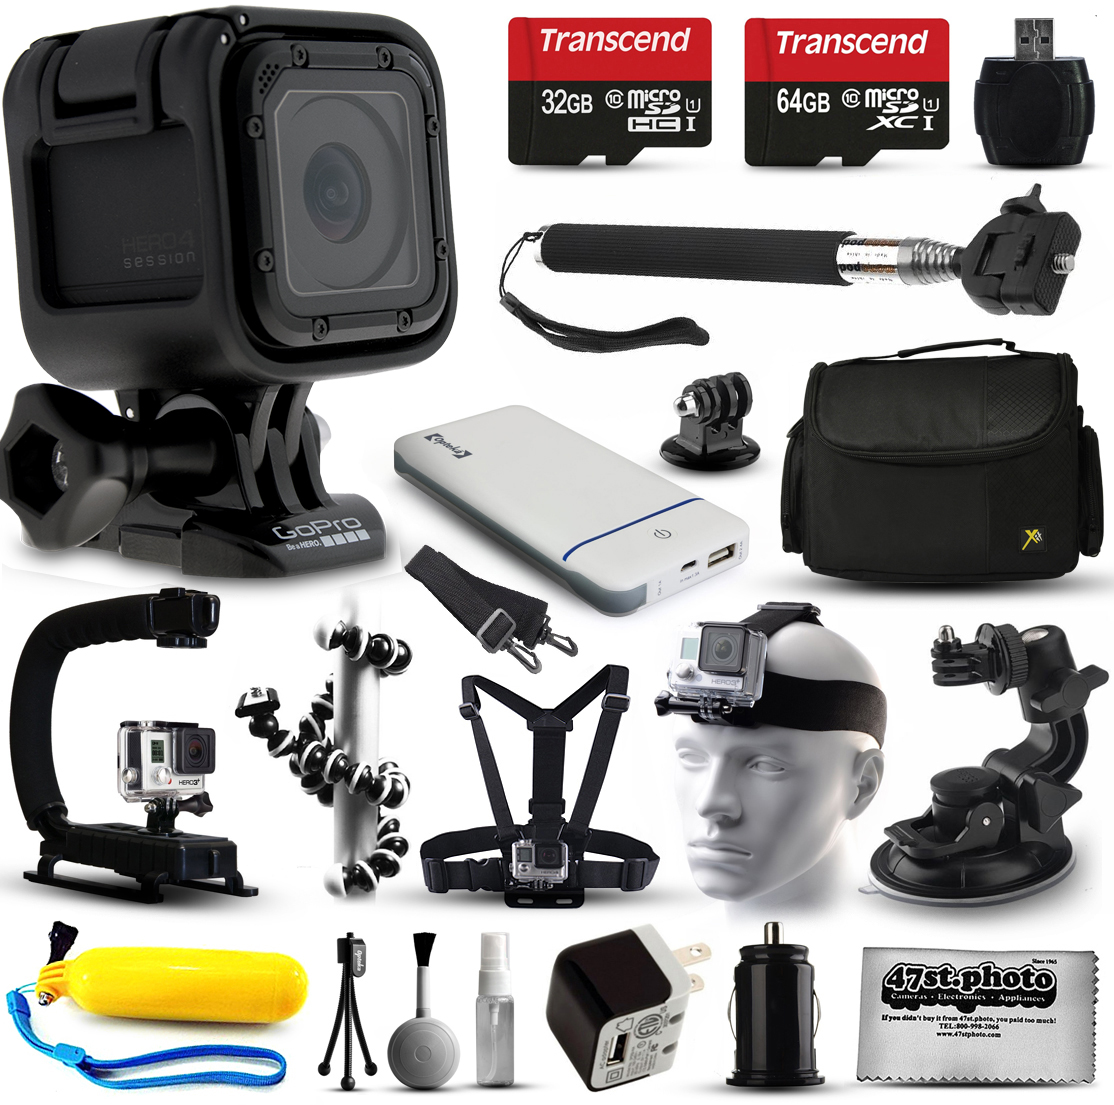 GoPro HERO4 Session HD Action Camera (CHDHS-101) + Ultimate 20 Piece Accessories Package with 96GB Memory + Travel Case + USB Portable Charger + Head\/Chest Strap + Opteka X-Grip + Car Mount & More!